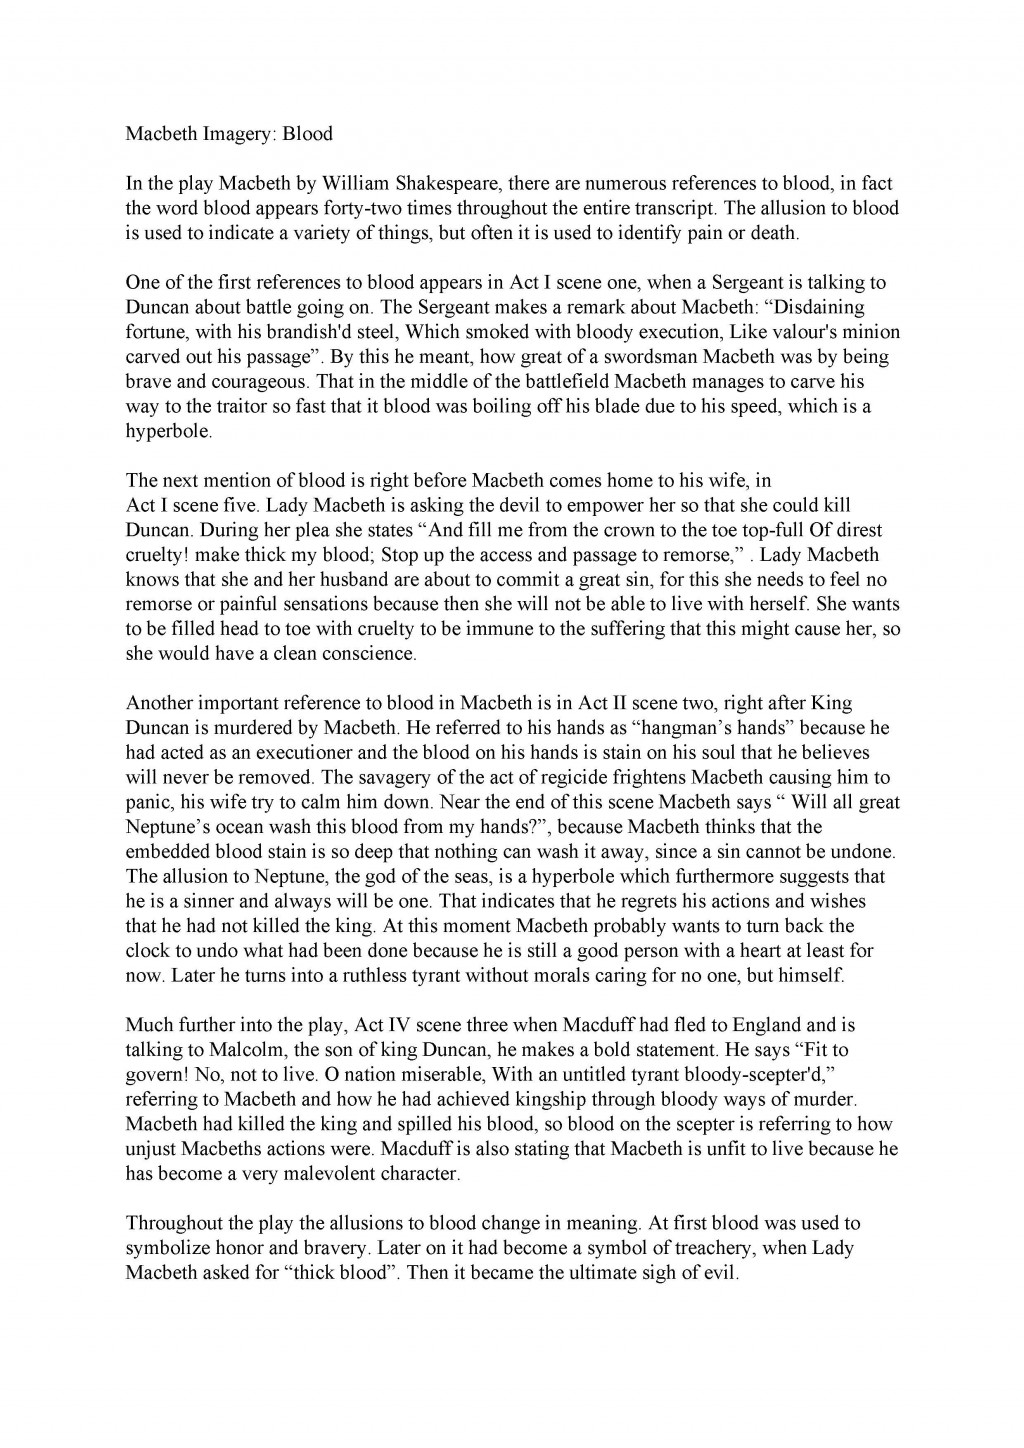 001 Essay On Macbeth Example Marvelous And Lady Macbeth's Relationship Literary As A Tragic Hero Plan Large